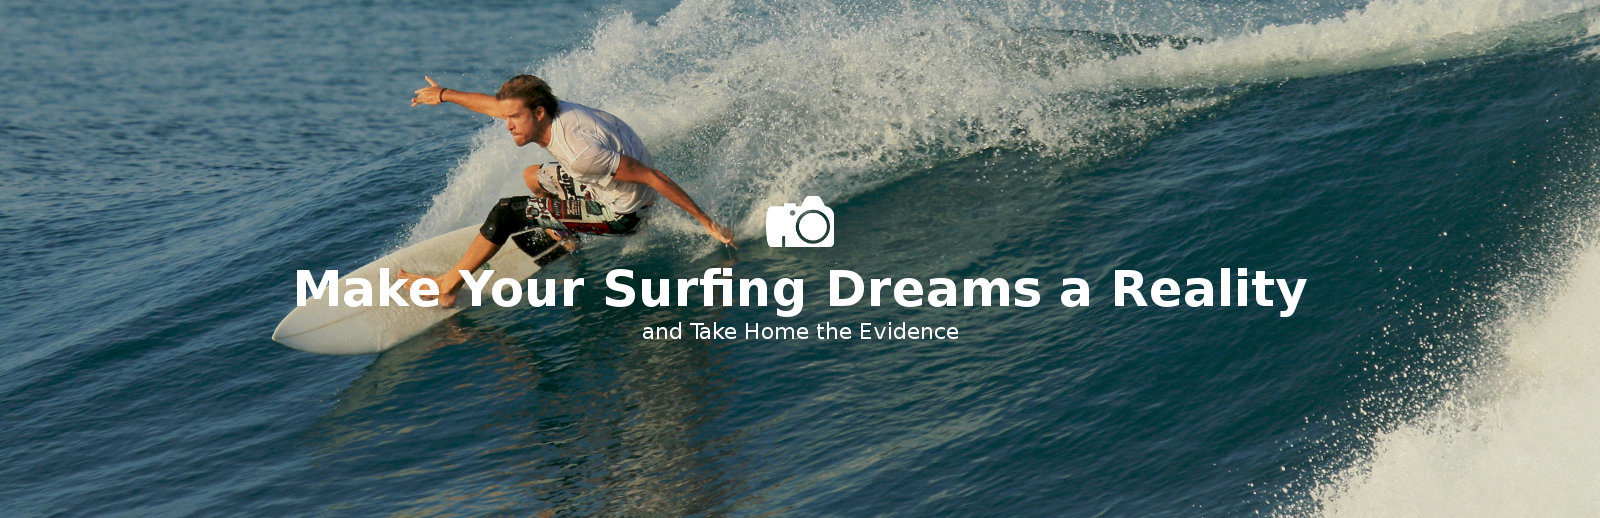 Surf Training Camps in New Zealand and Indonesia.